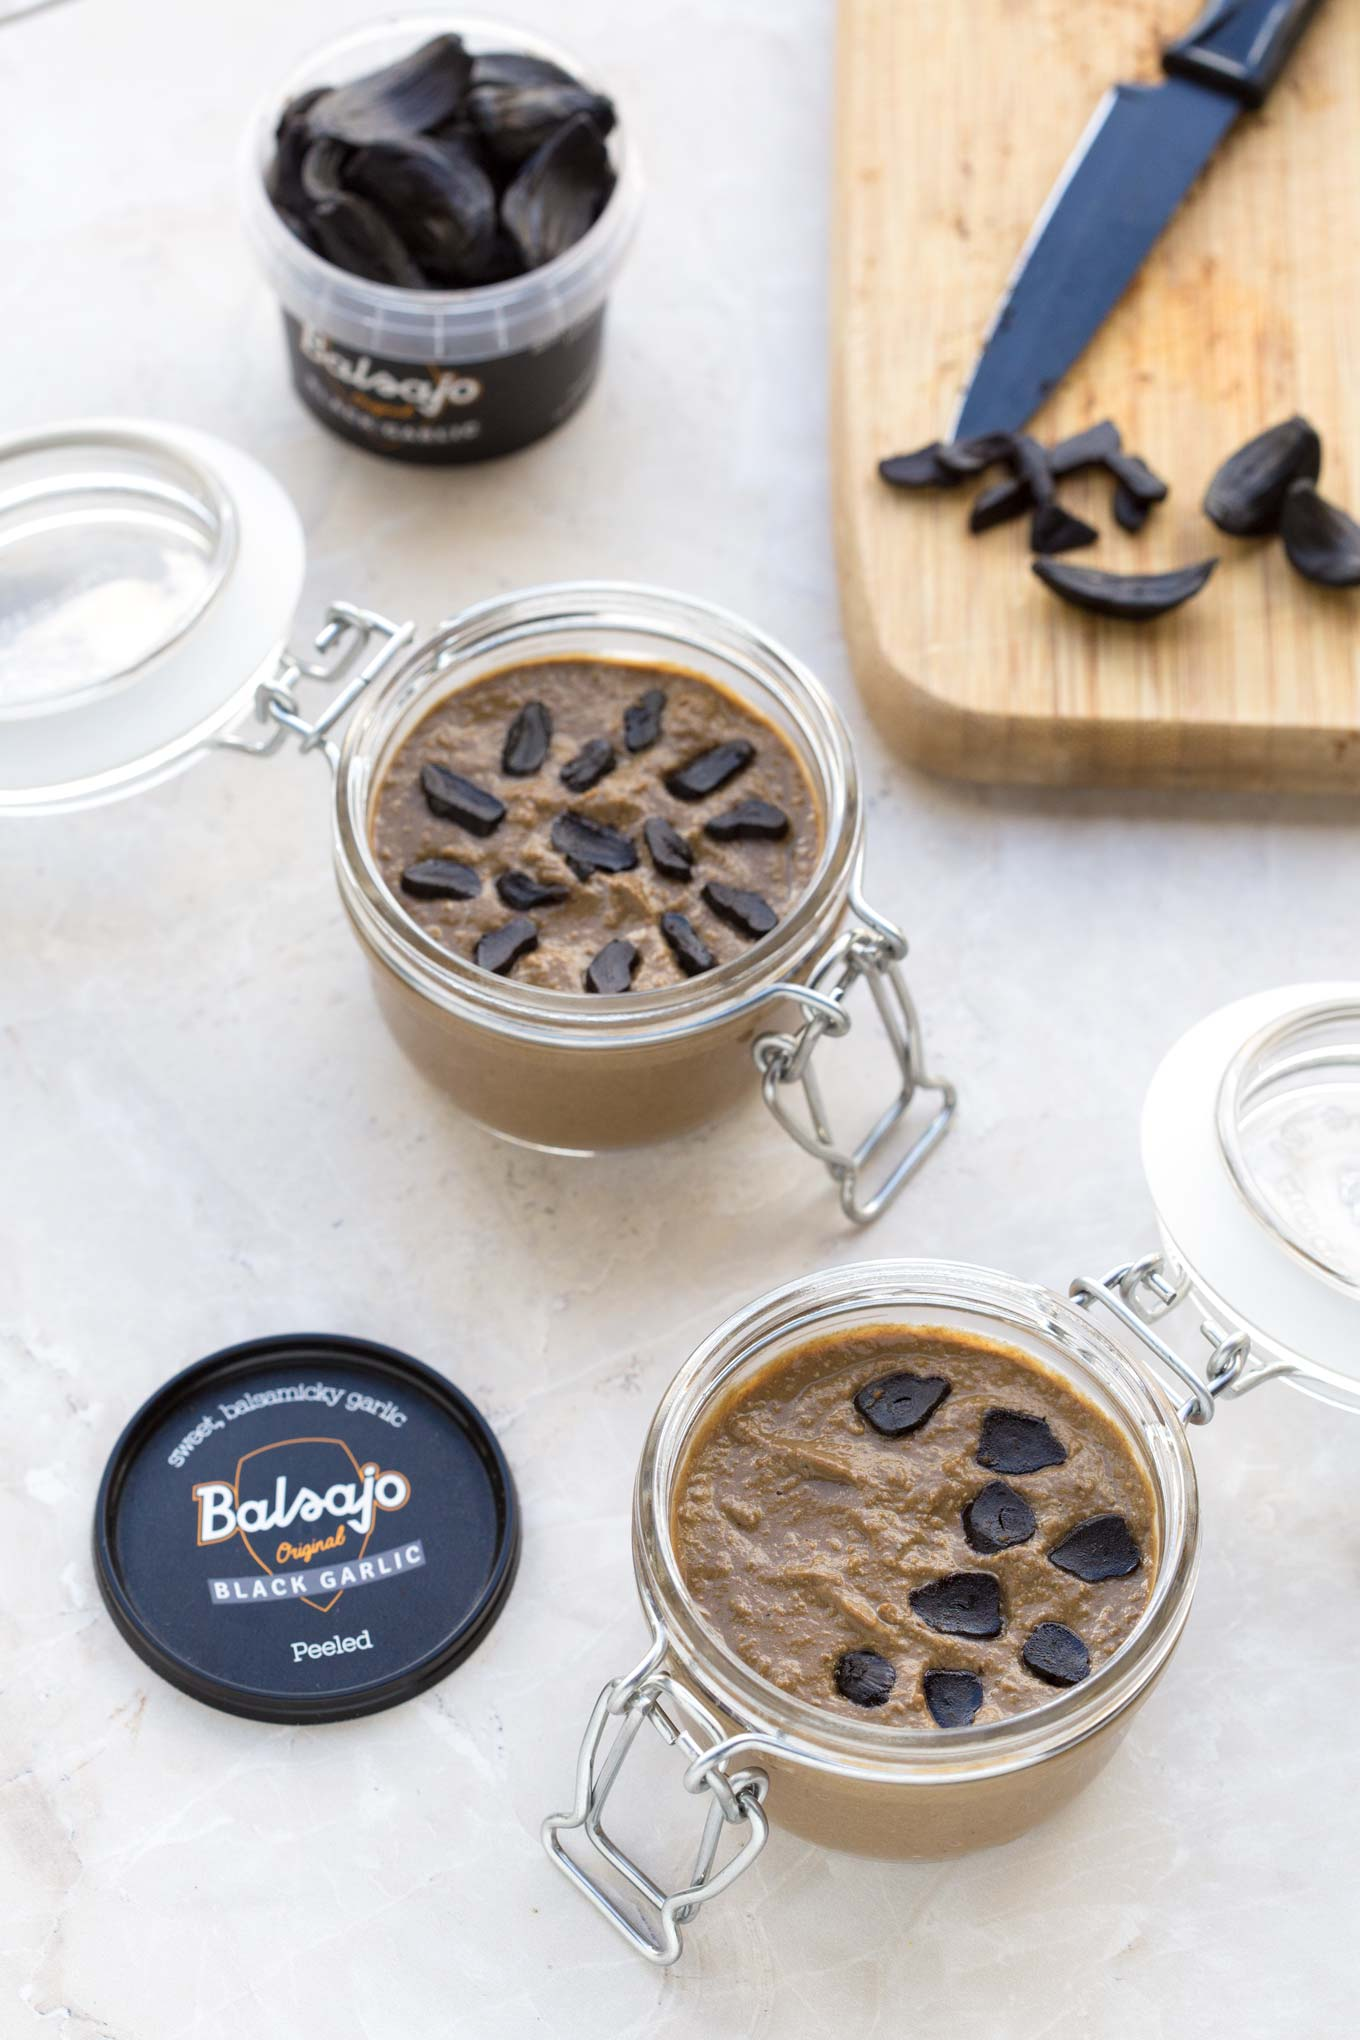 Black garlic chicken liver pate garlic matters two mason jars filled with black garlic chicken liver pate and a jar of balsajo black forumfinder Image collections